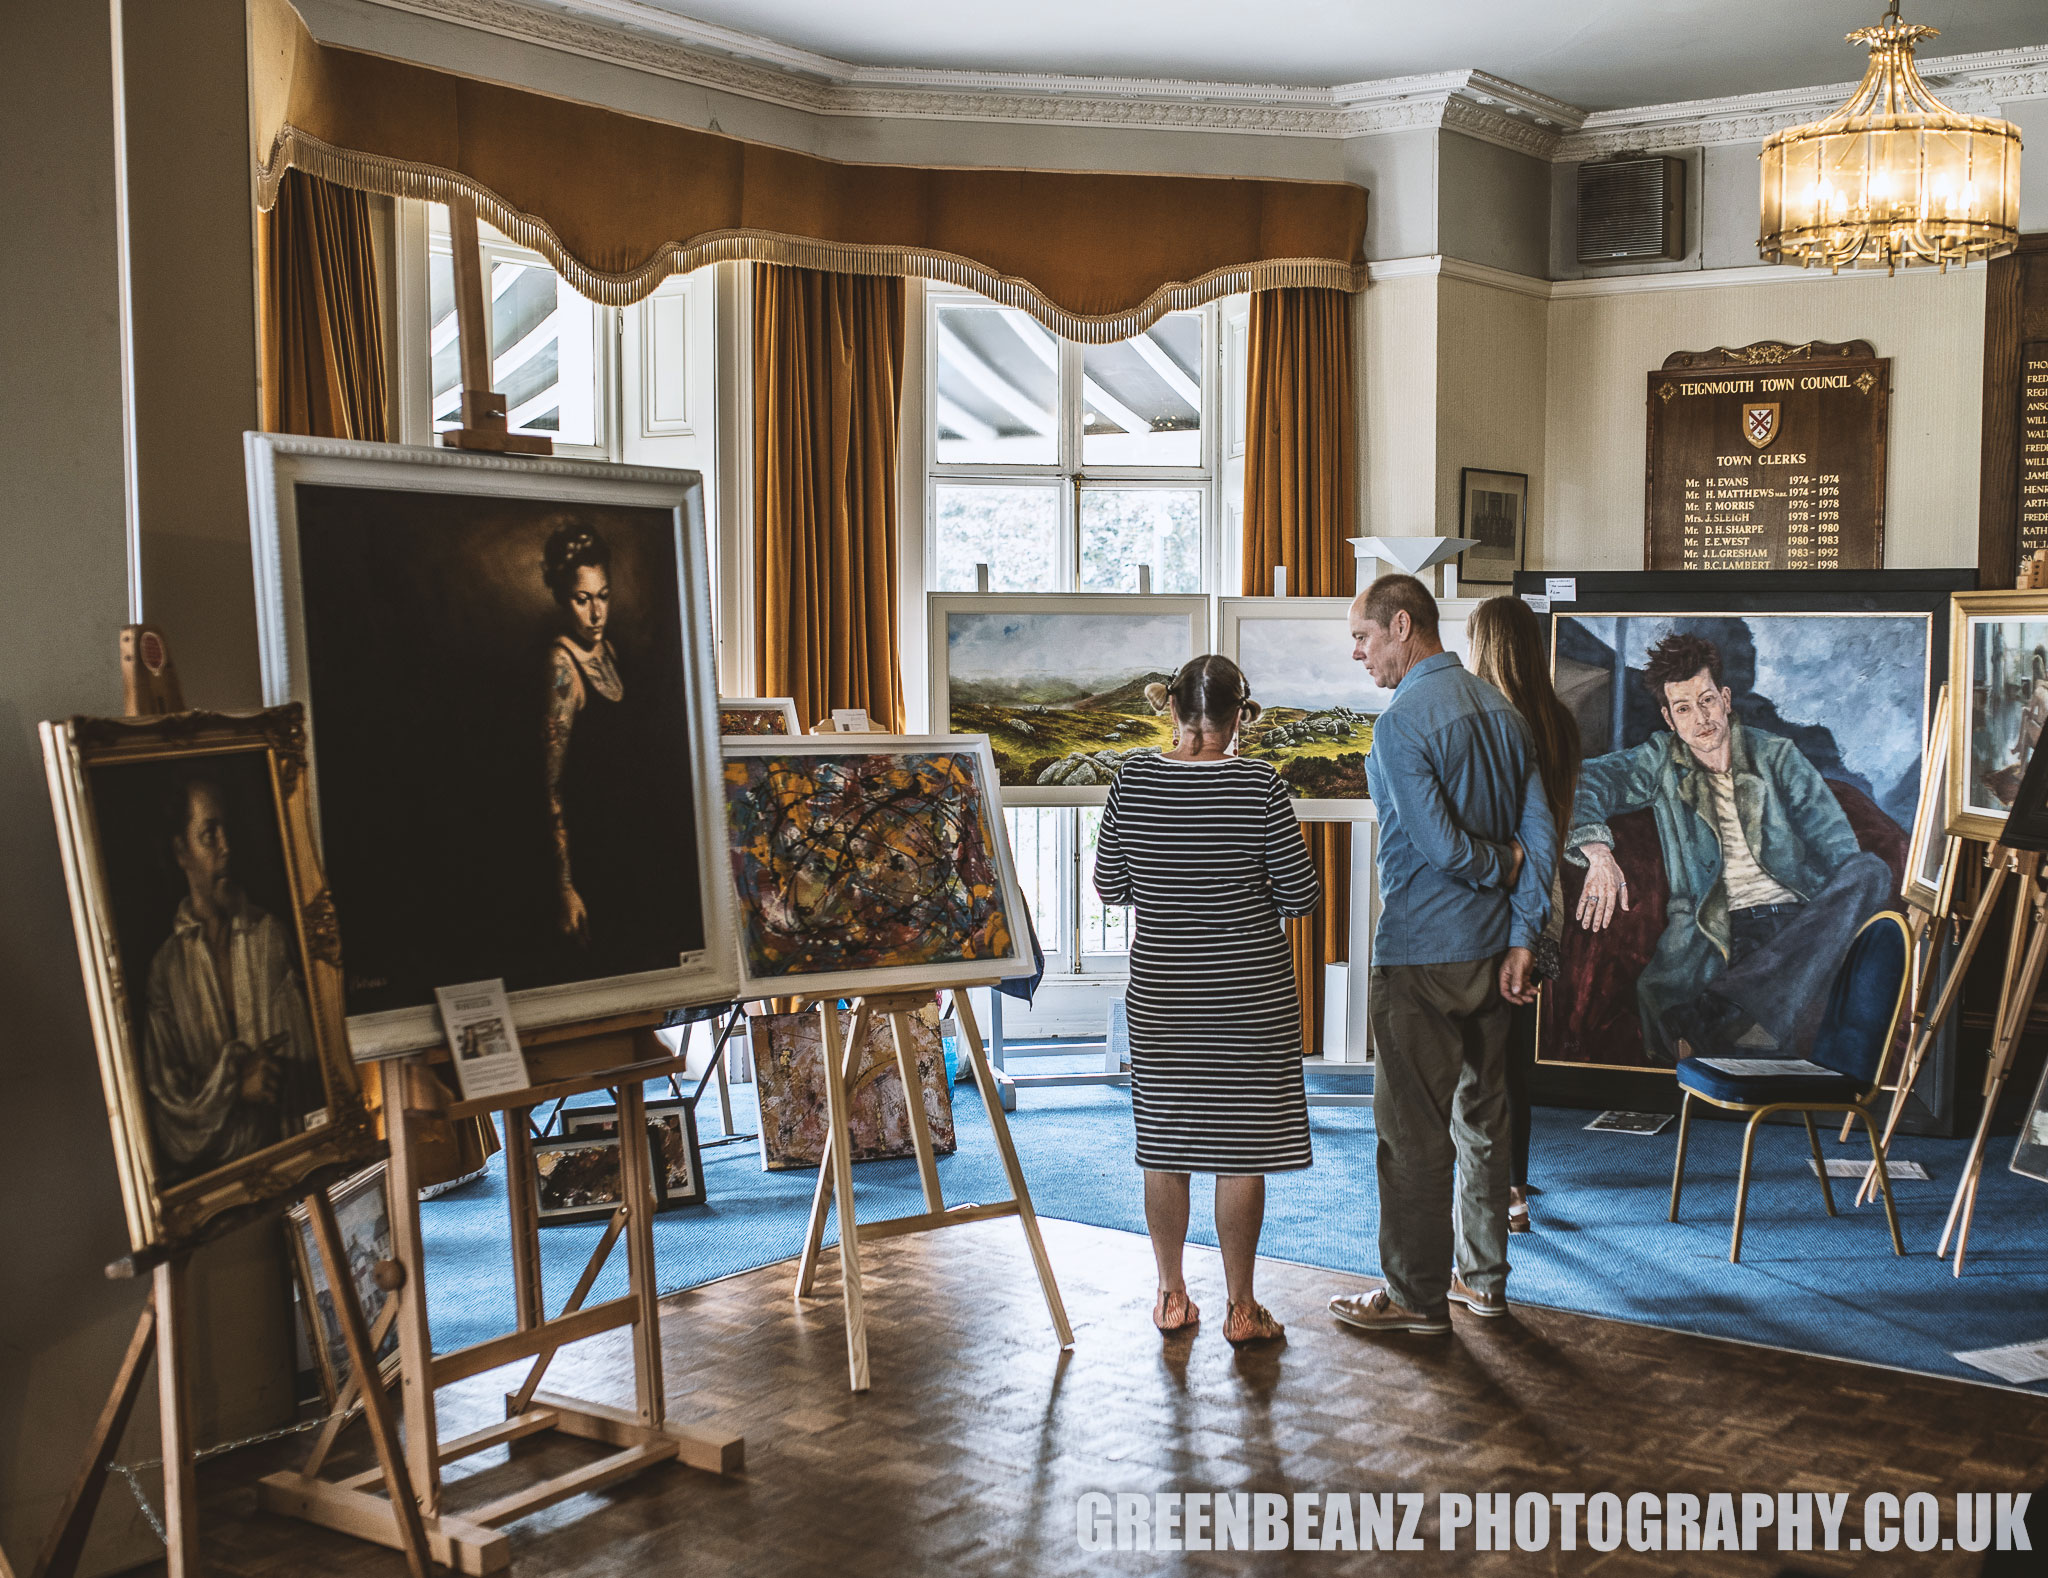 The Reuben Lenkiewicz Arts Festival at Bitton House in Teignmouth Devon 201